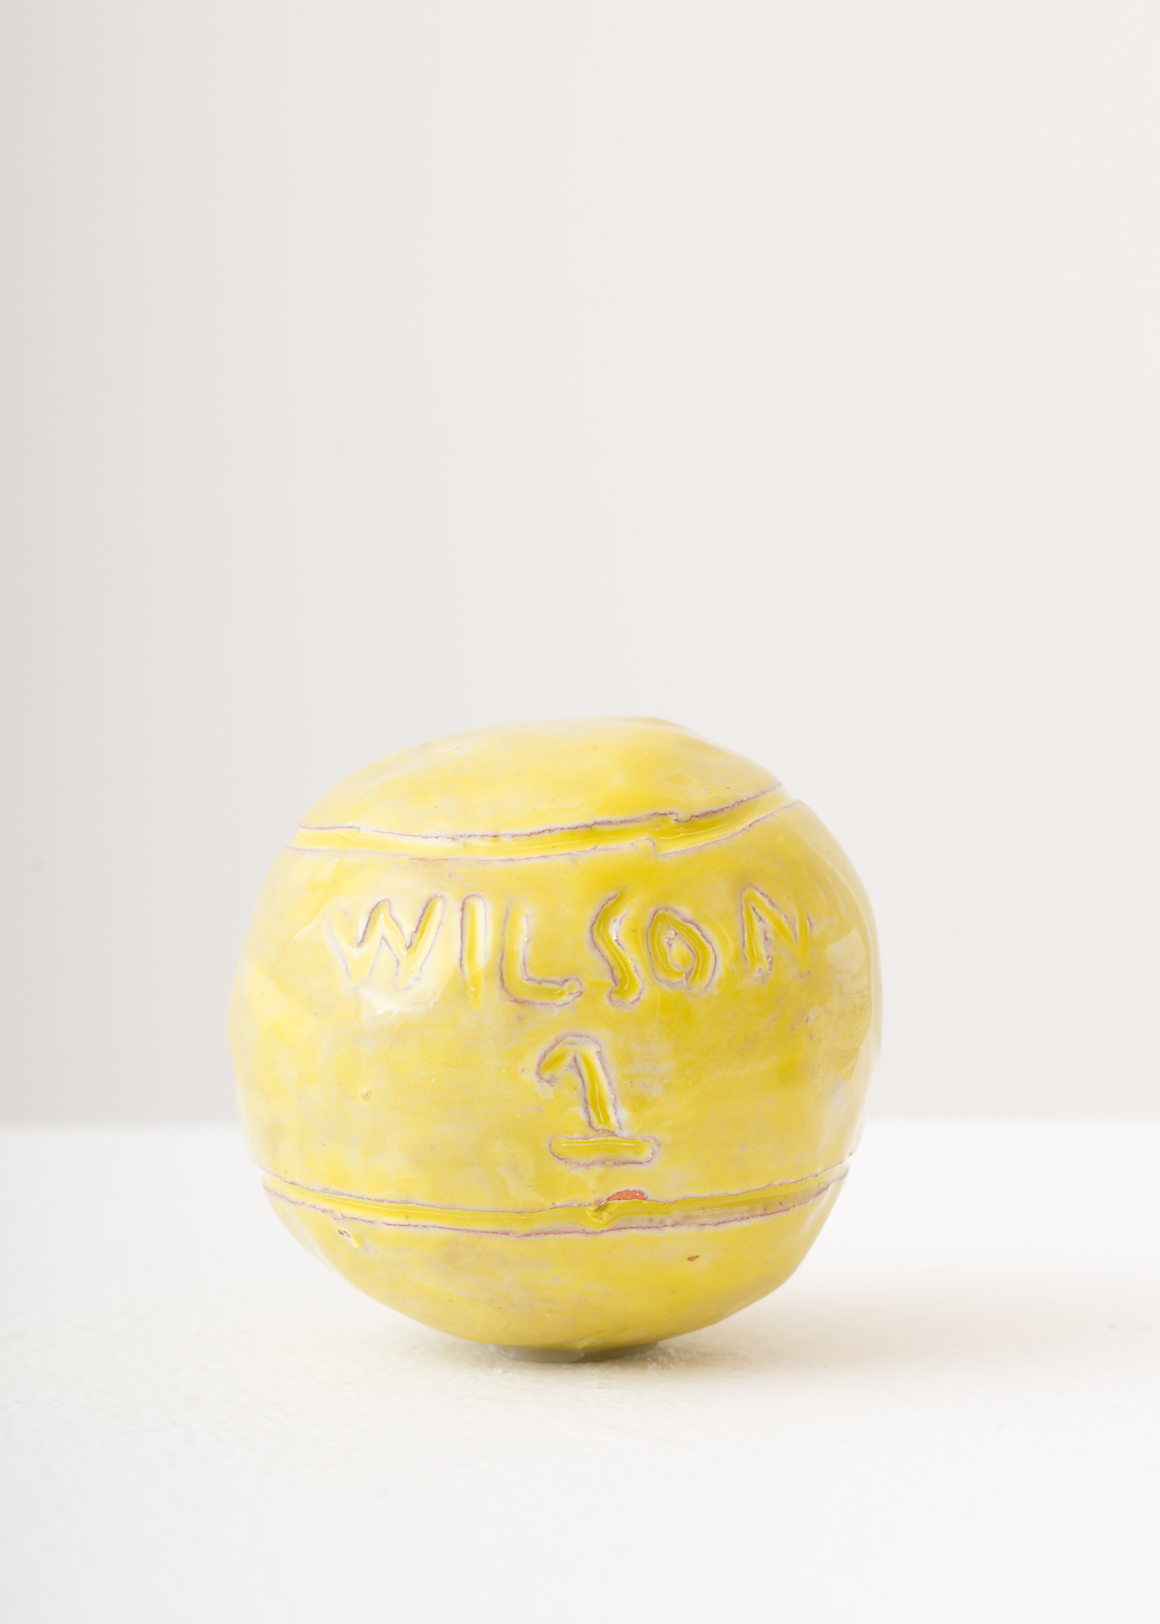 <p><em>Balls</em><span class='media'>Earthenware, Glaze</span>2.75 x 2.75 in (7 x 7 cm)<br>Edition of Edition 20 of 20<br>2018<br><a class='inquire' href='mailto:info@gildargallery.com?subject=Artwork Inquiry SKAN0041&body=I am interested in finding out more about Balls by Stephanie Kantor'>Inquire</a></p>